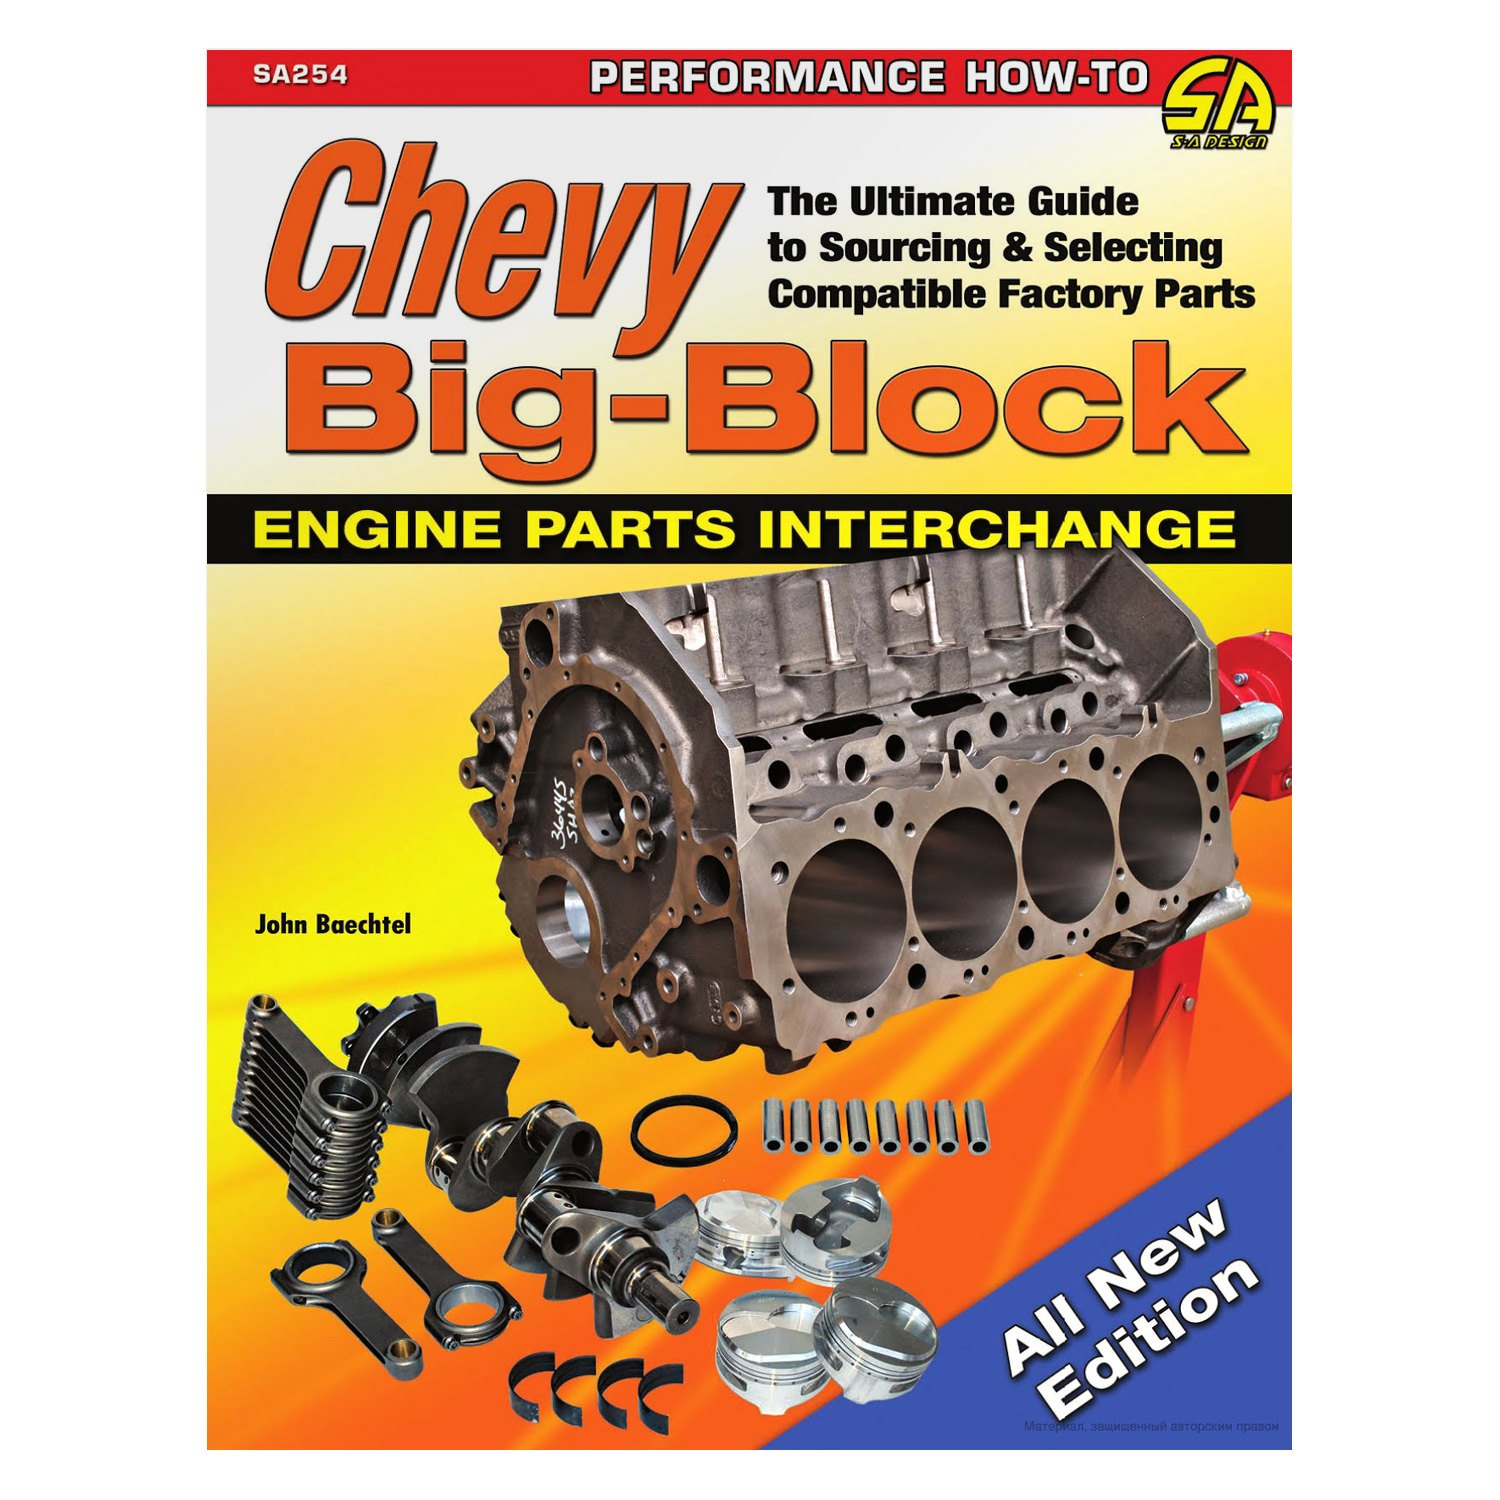 S-A Design® - Chevy Big-Block Engine Parts Interchange: The Ultimate Guide  to